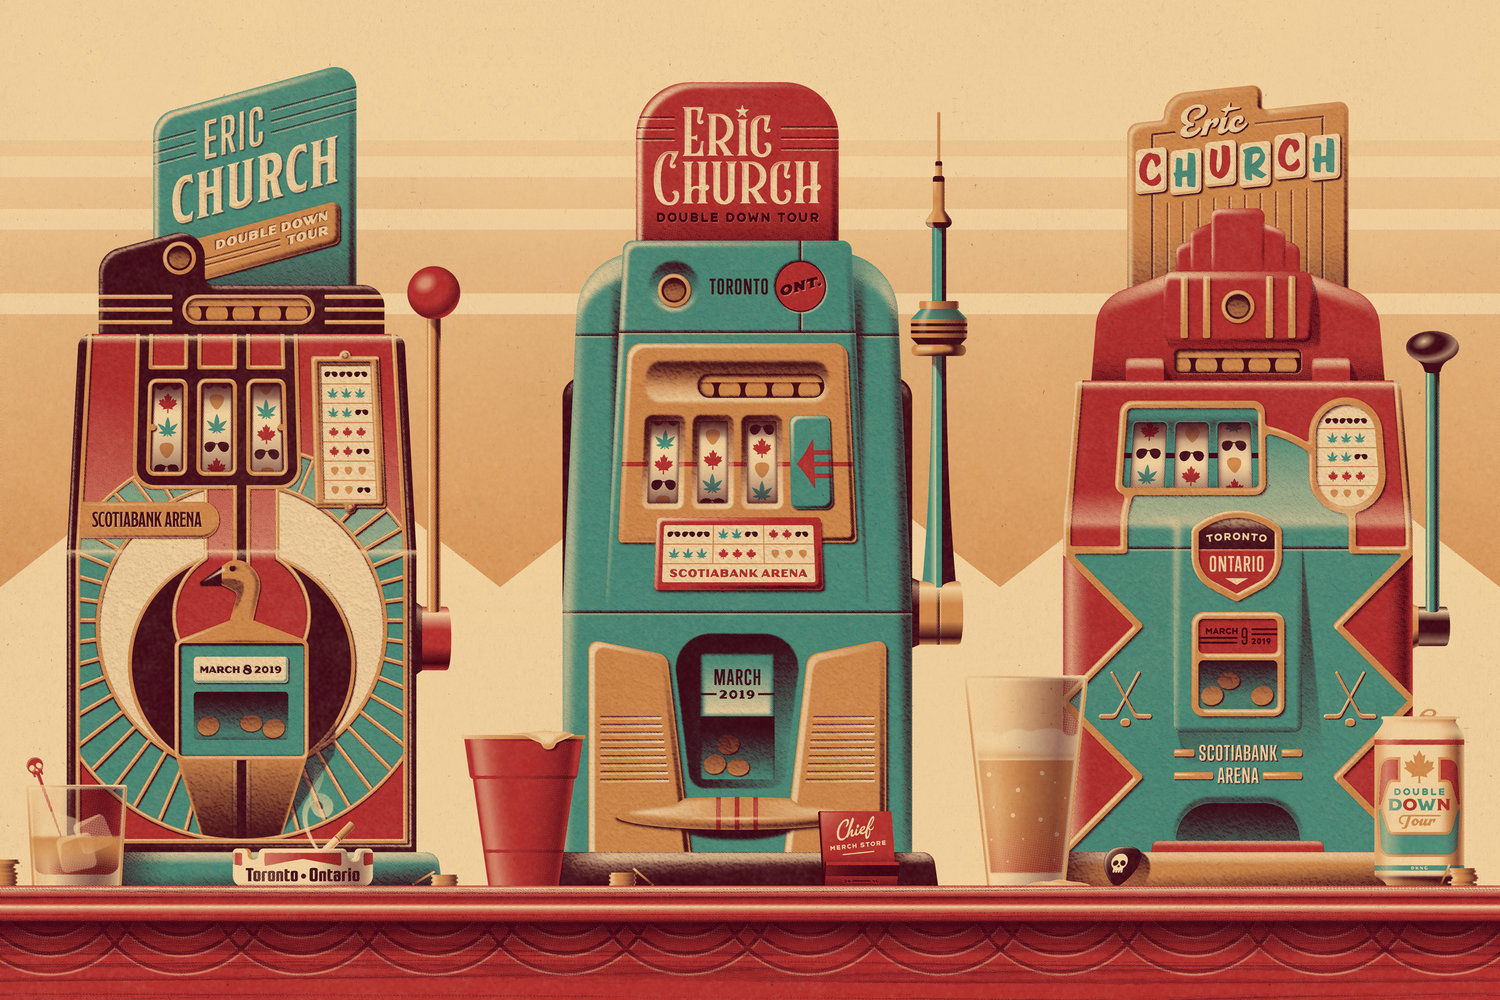 Eric+Church+Posters+by+DKNG.jpg